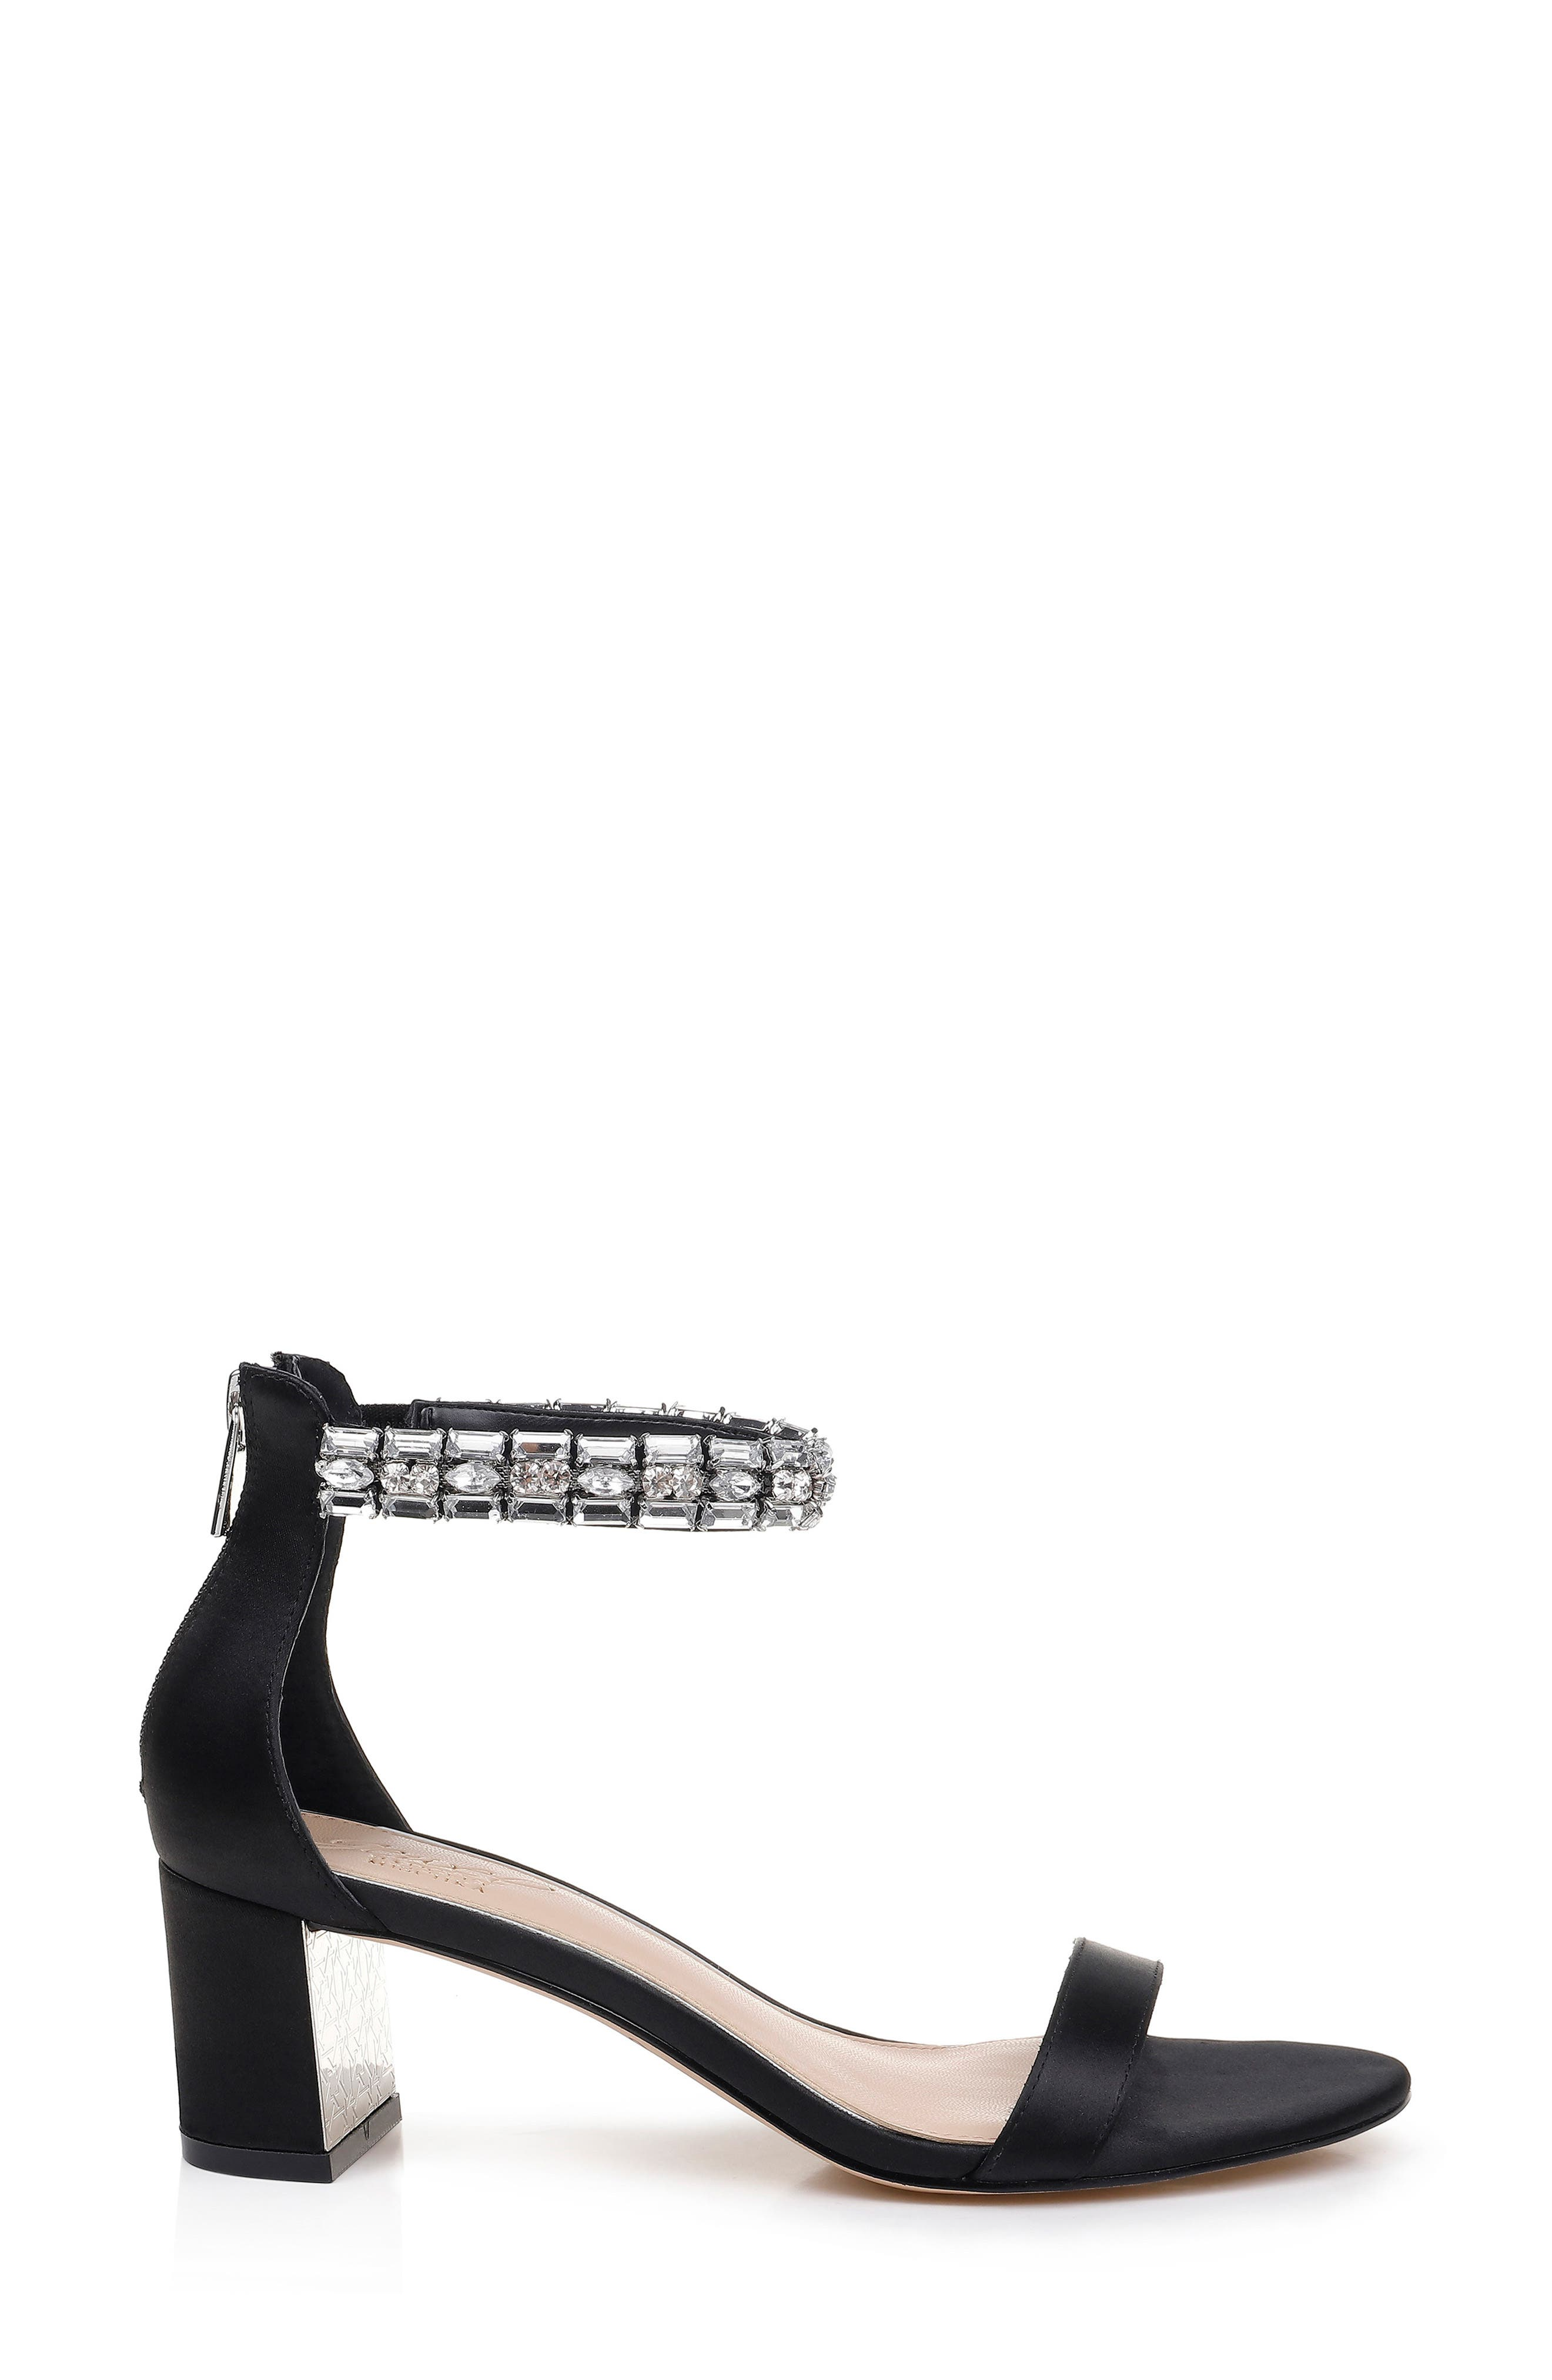 JEWEL BADGLEY MISCHKA, Katerina Ankle Strap Sandal, Alternate thumbnail 3, color, BLACK CRYSTAL SATIN